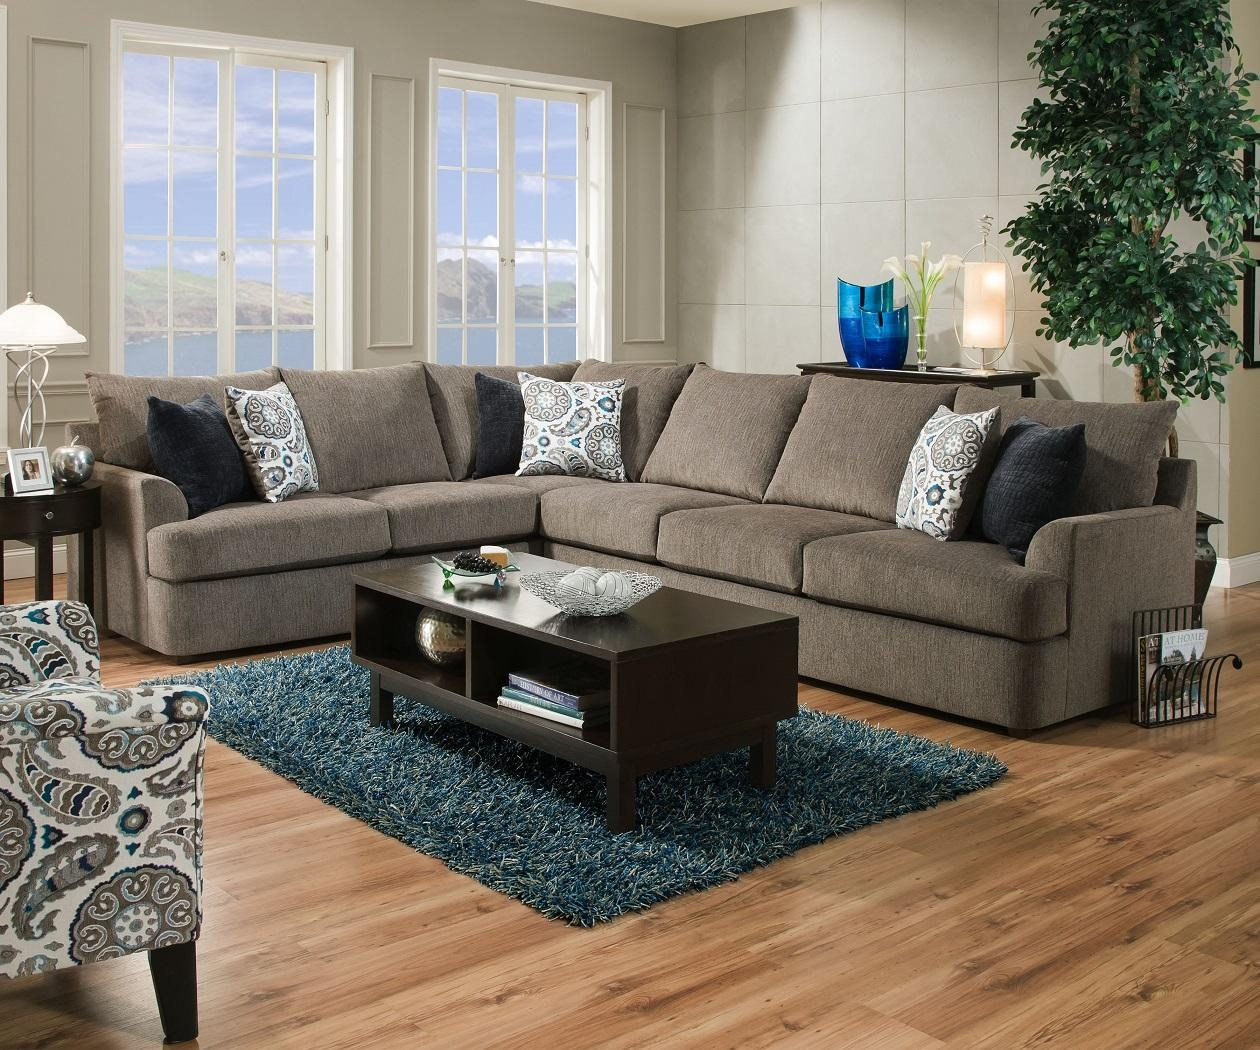 United Simmons Grandstand 8540 Beautyrest Grey Sectional Sofa intended for Simmons Sofas